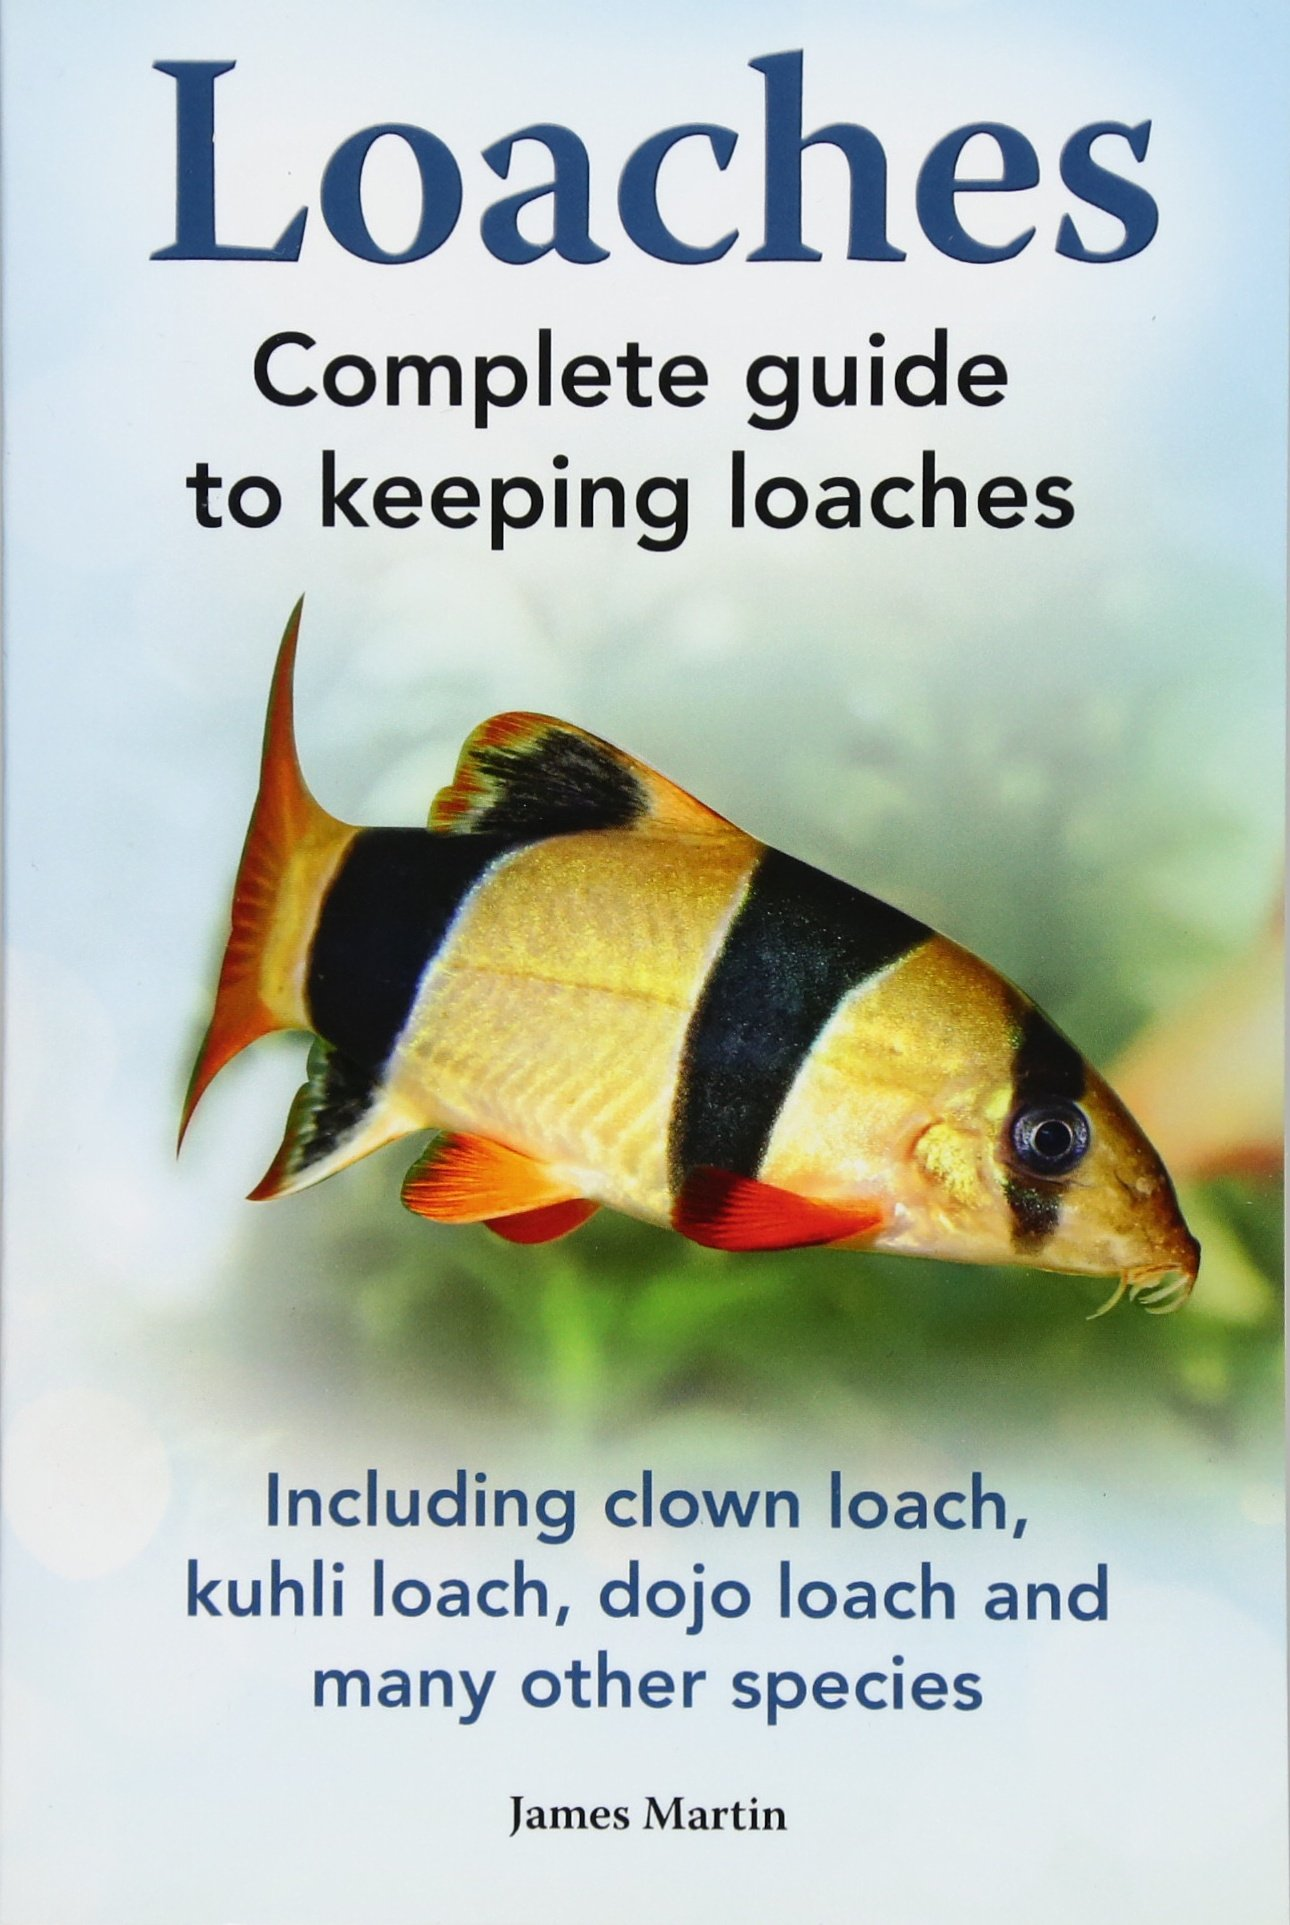 Loaches: Complete Guide to Keeping Loaches. Including Clown Loach, Kuhli Loach, Dojo Loach and Many Other Species. pdf